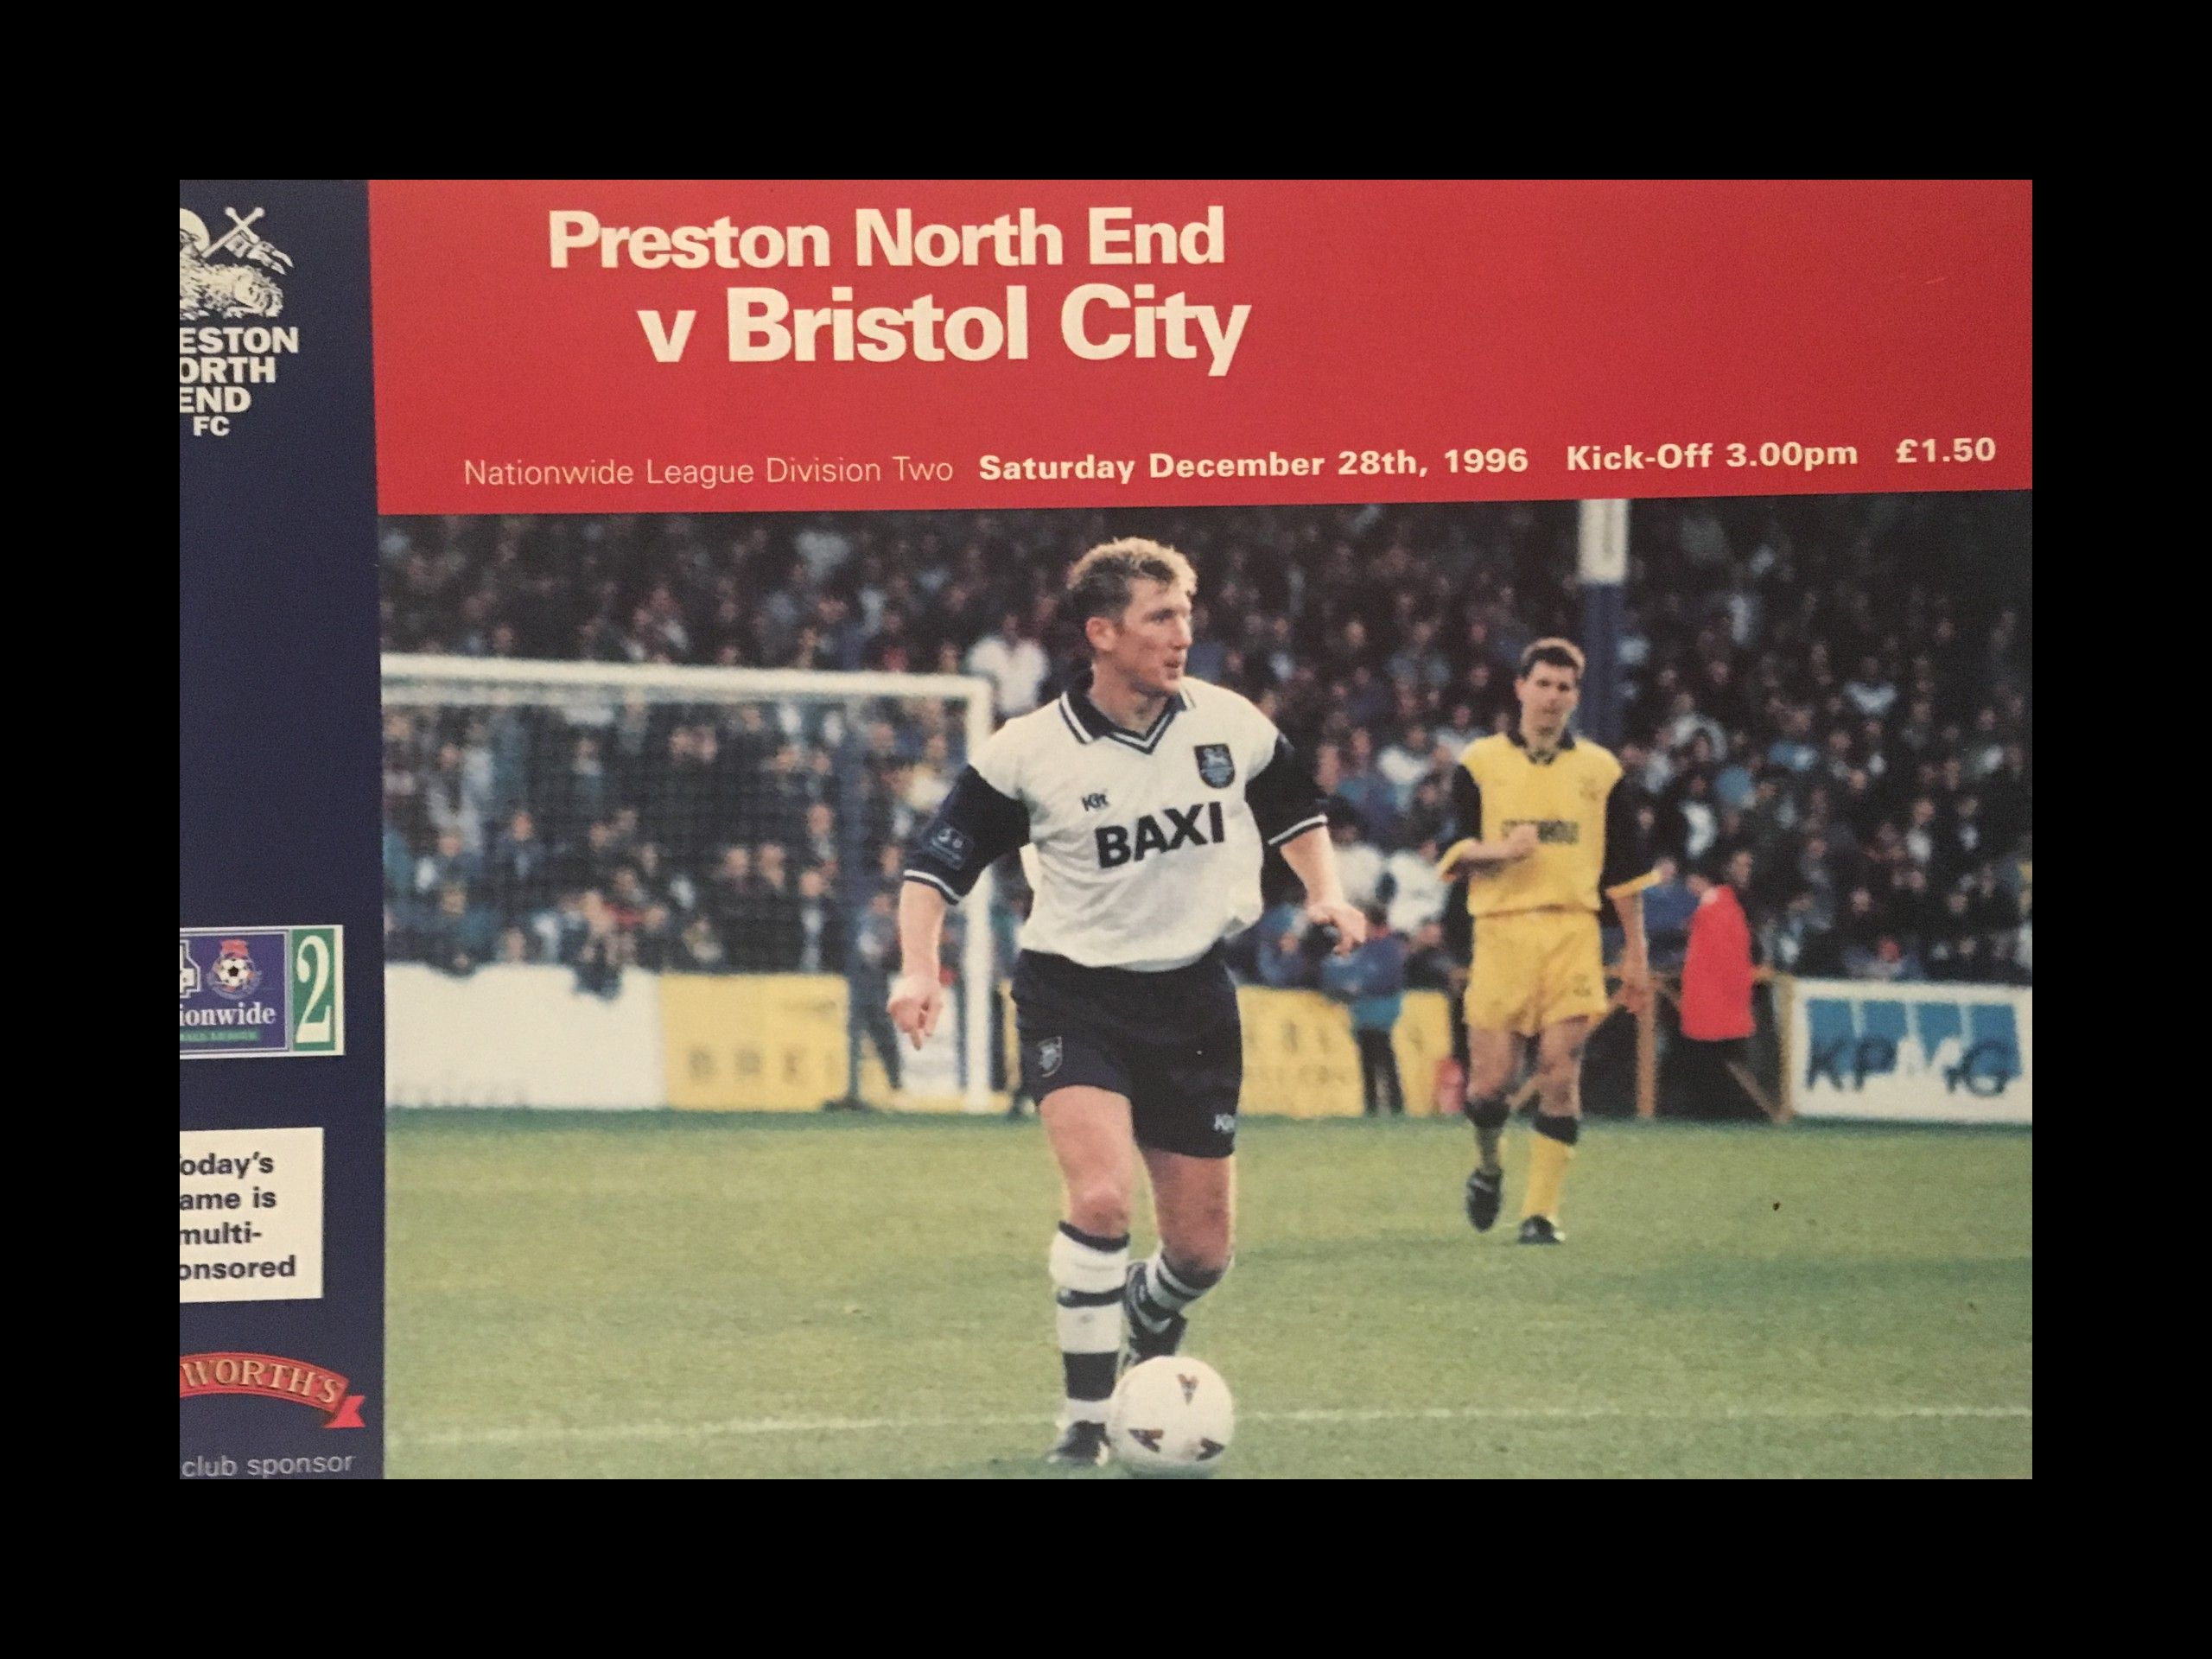 Preston North End v Bristol City 28-12-1996 Programme